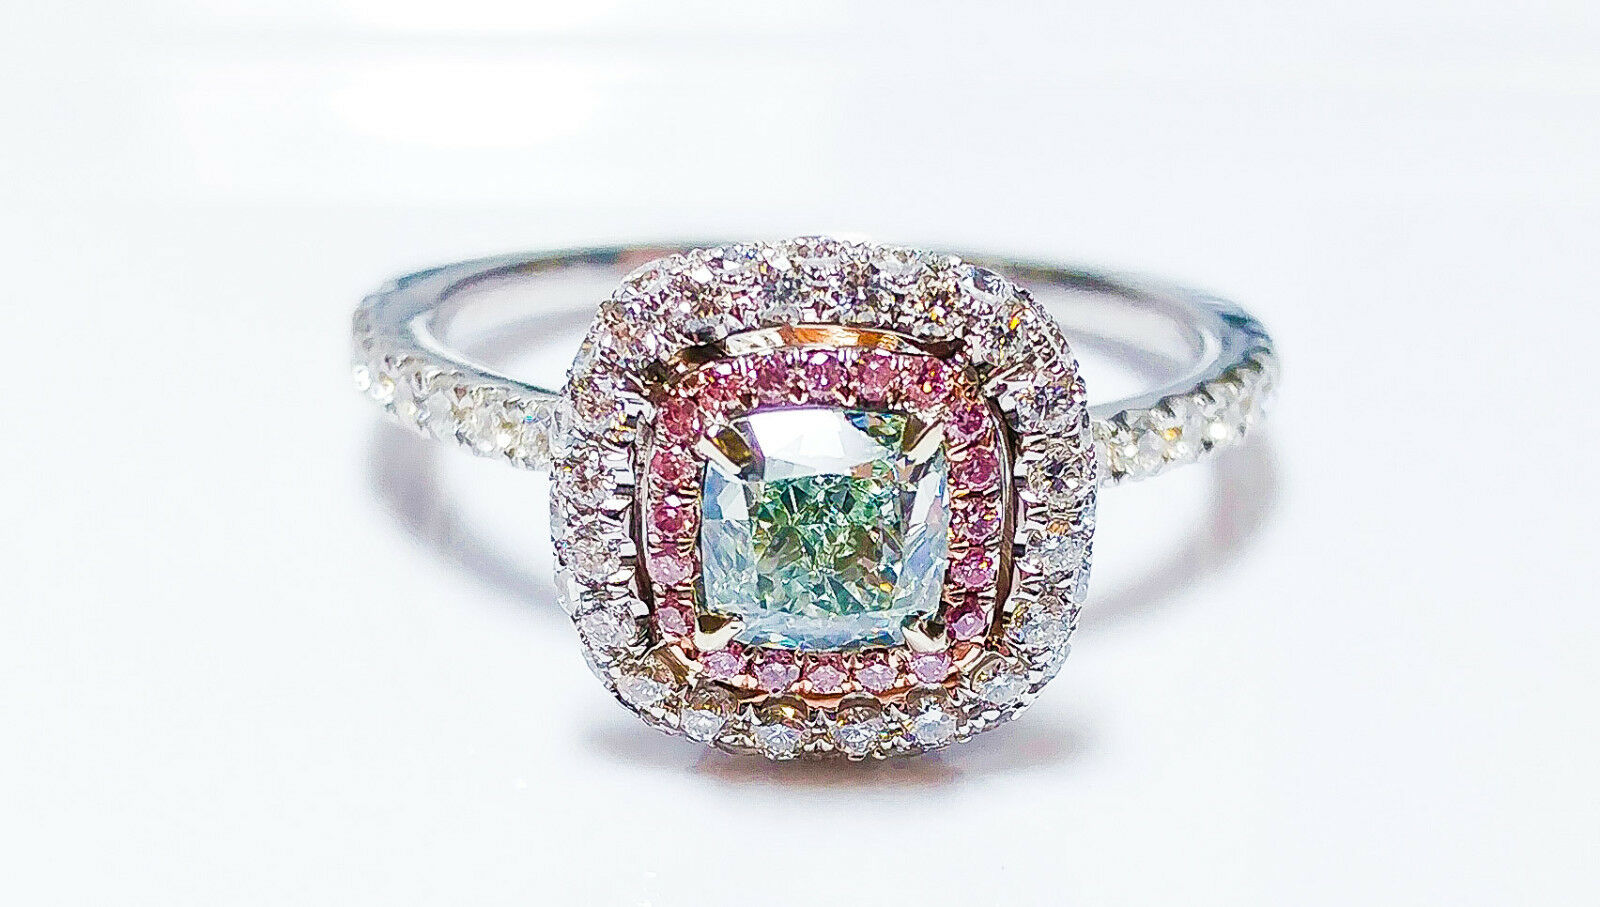 1.31ct Light Green, Argyle 6pp Intense Pink Diamond Engagement Ring GIA 18K VS1 2